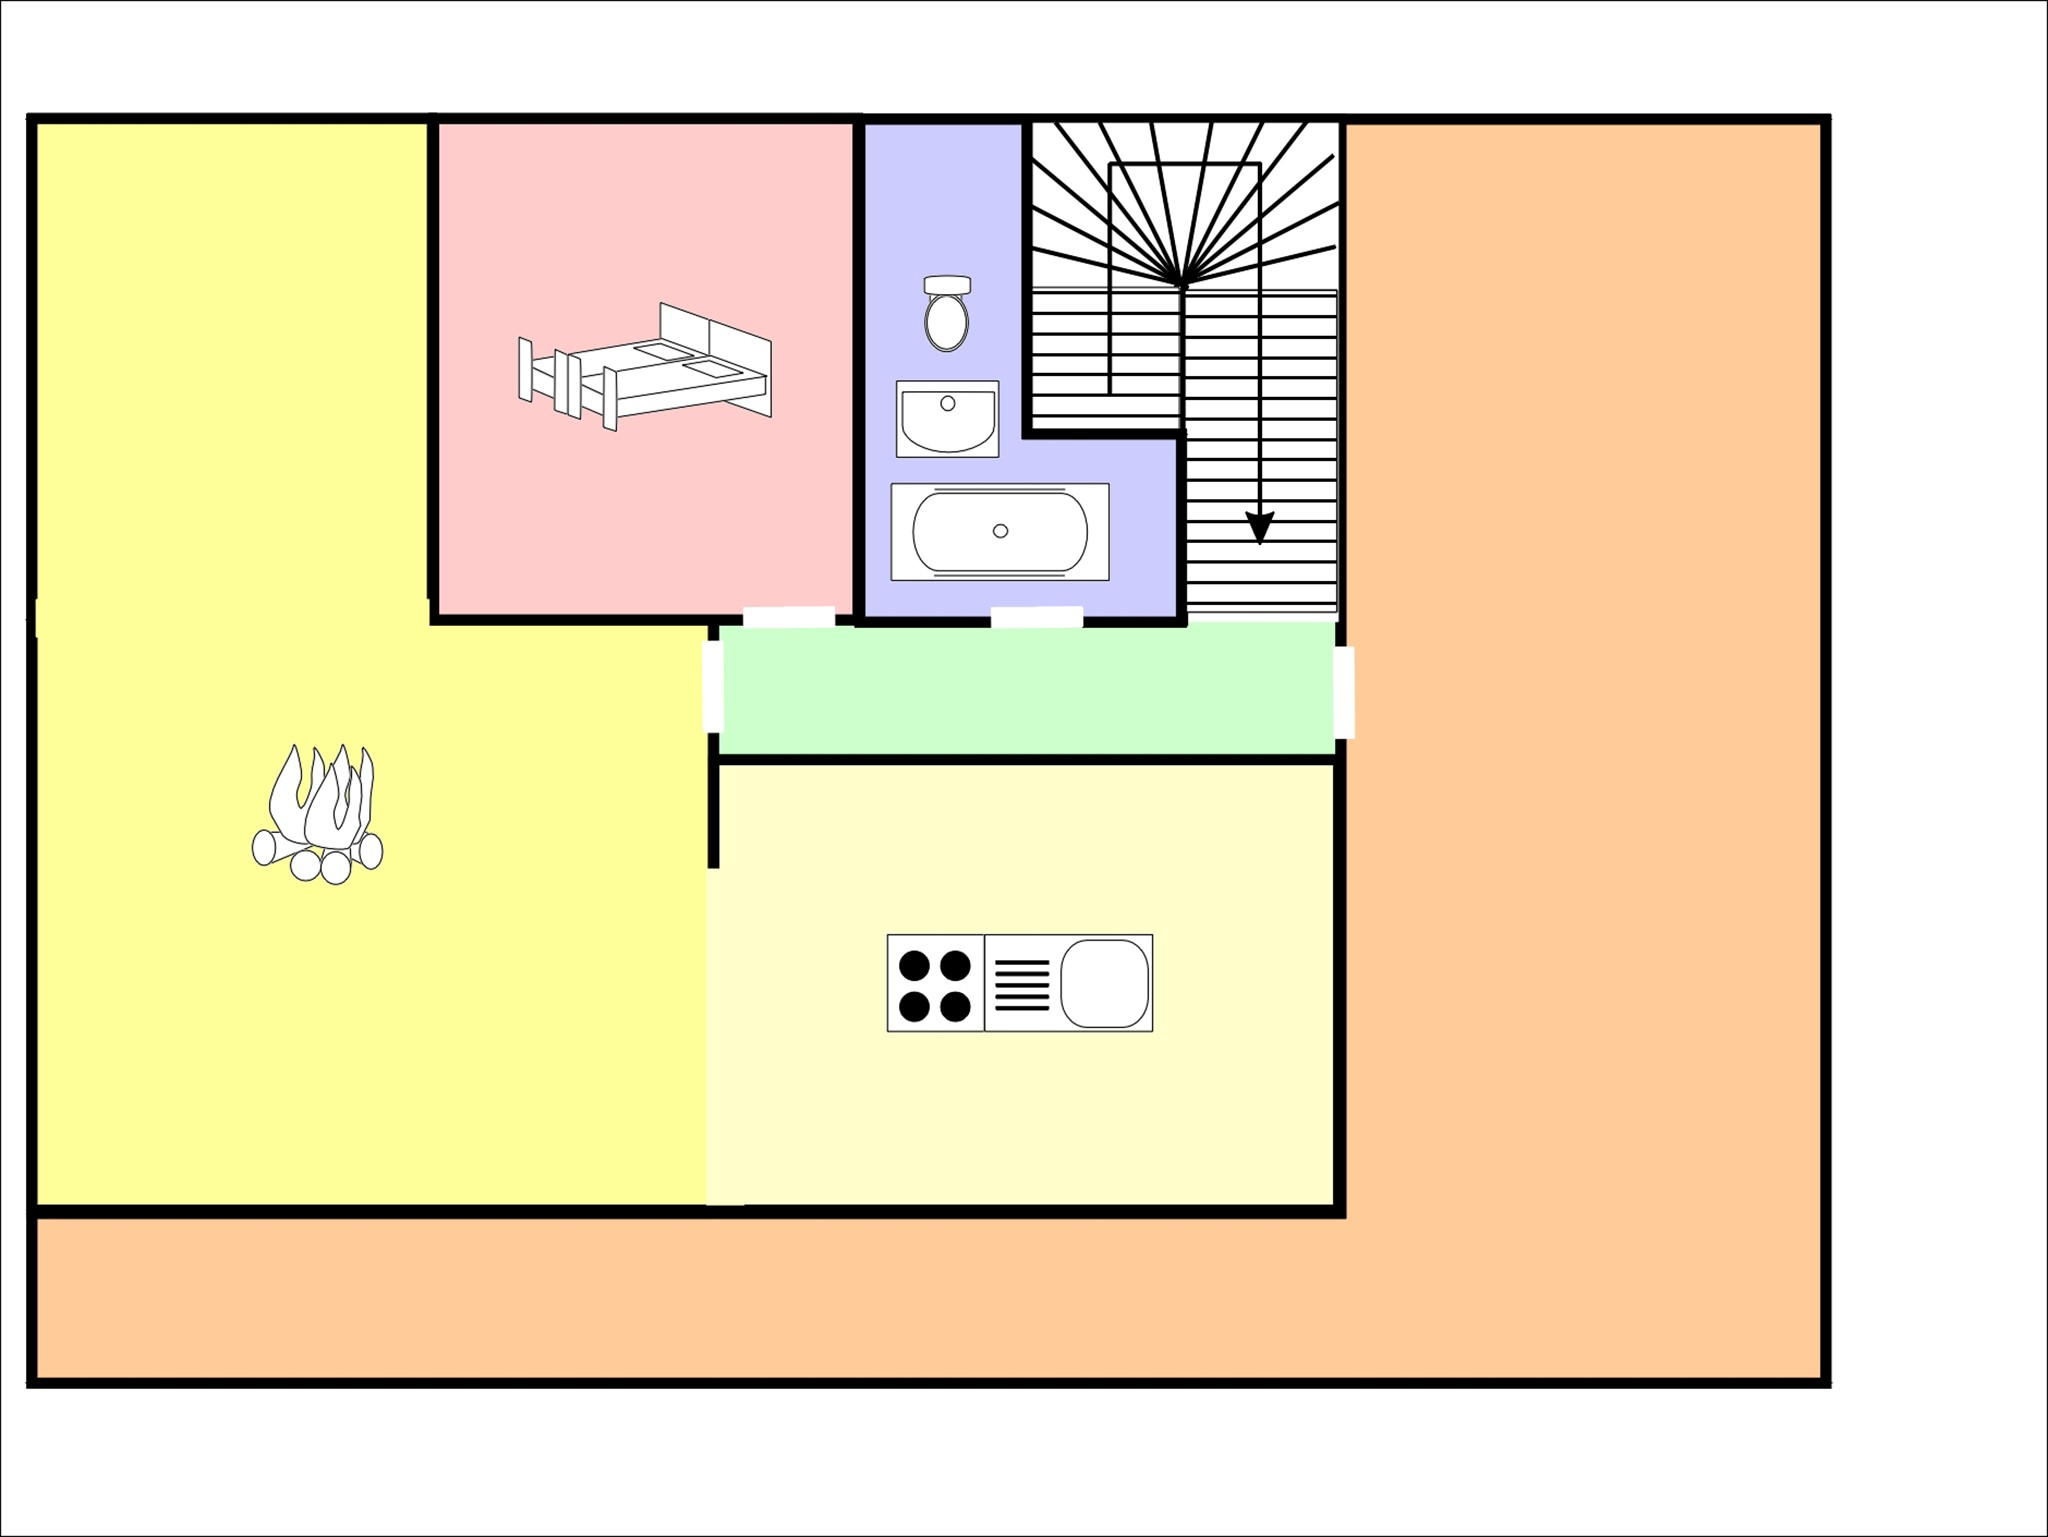 Chalet Maria - floor plan - level 2